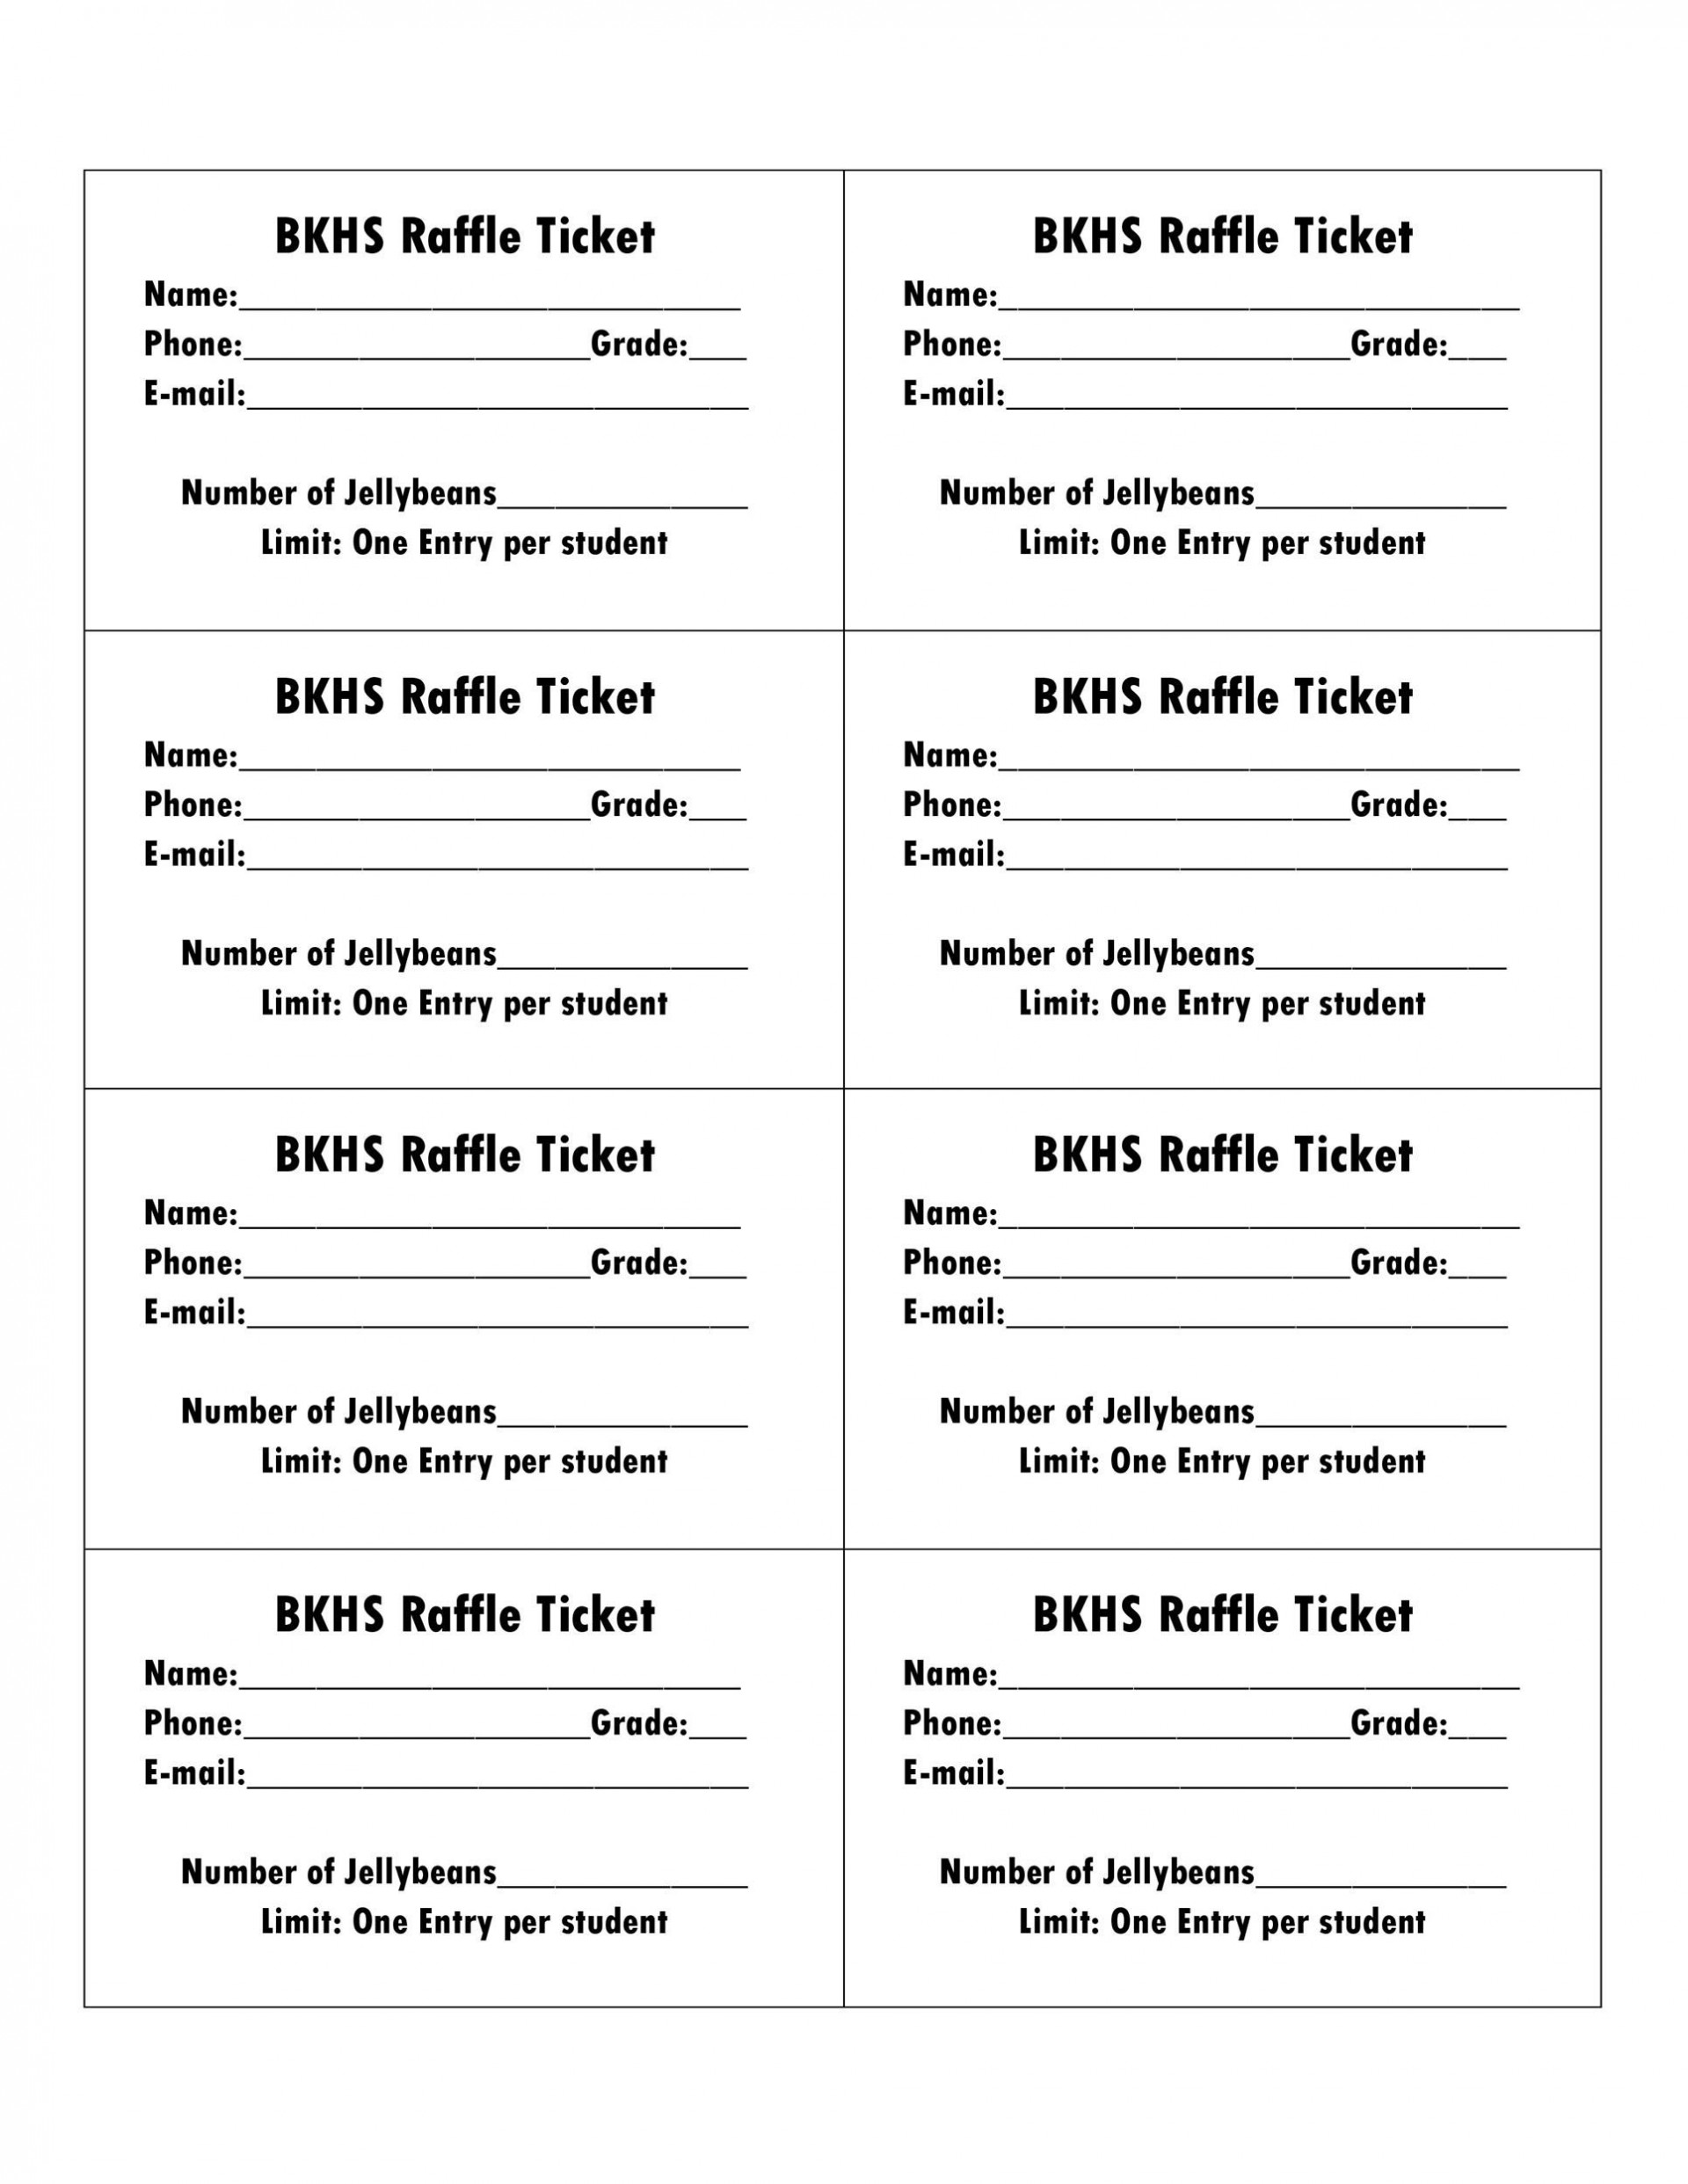 008 Impressive Printable Raffle Ticket Template High Definition  Free With Number Excel1920